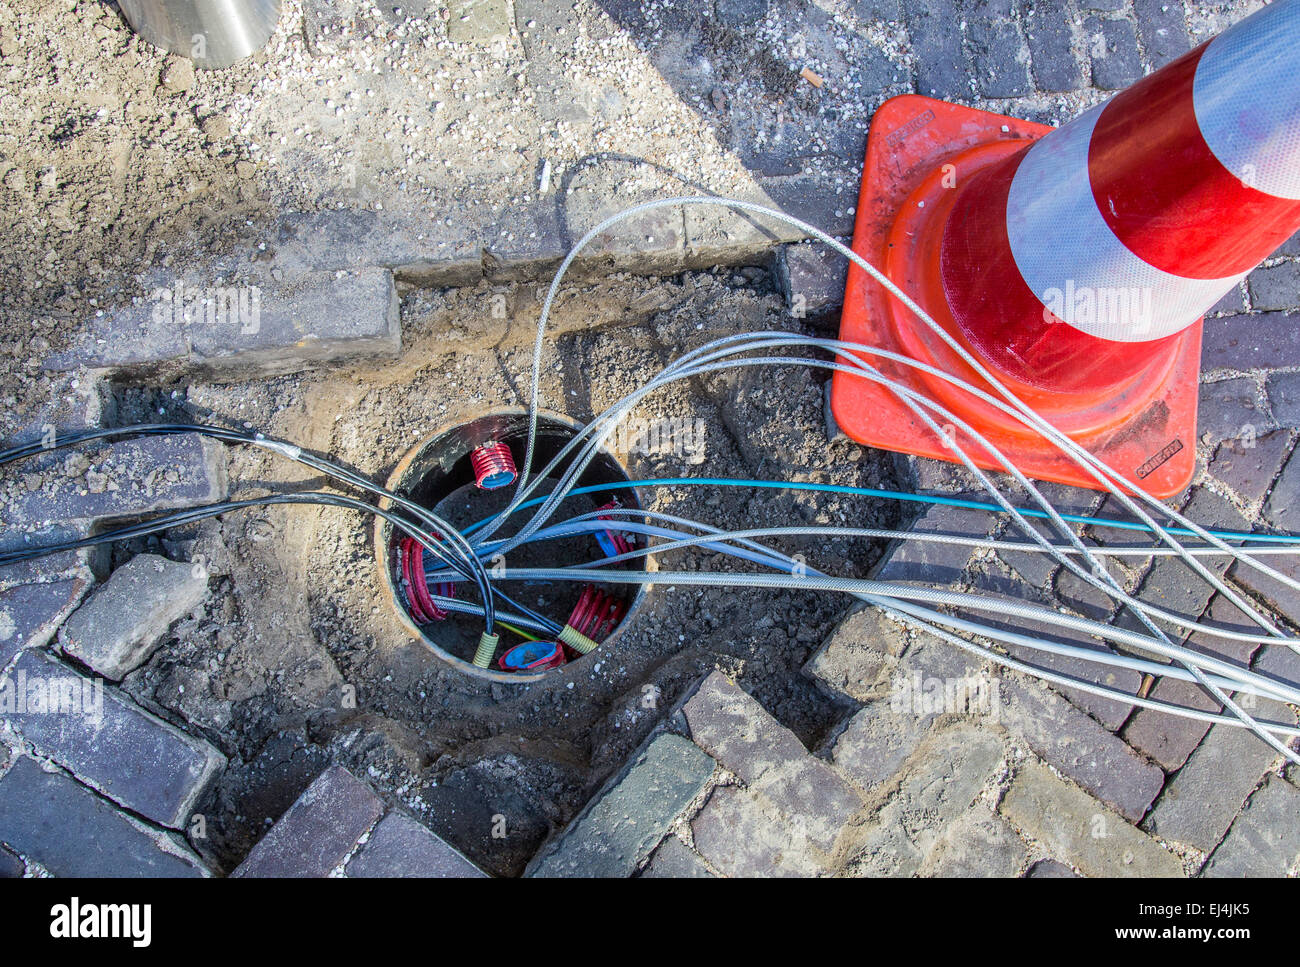 Alkmaar, North Holland, Old Town, cables for telecommunications are laid, fiber optic cable, internet, phone, TV - Stock Image